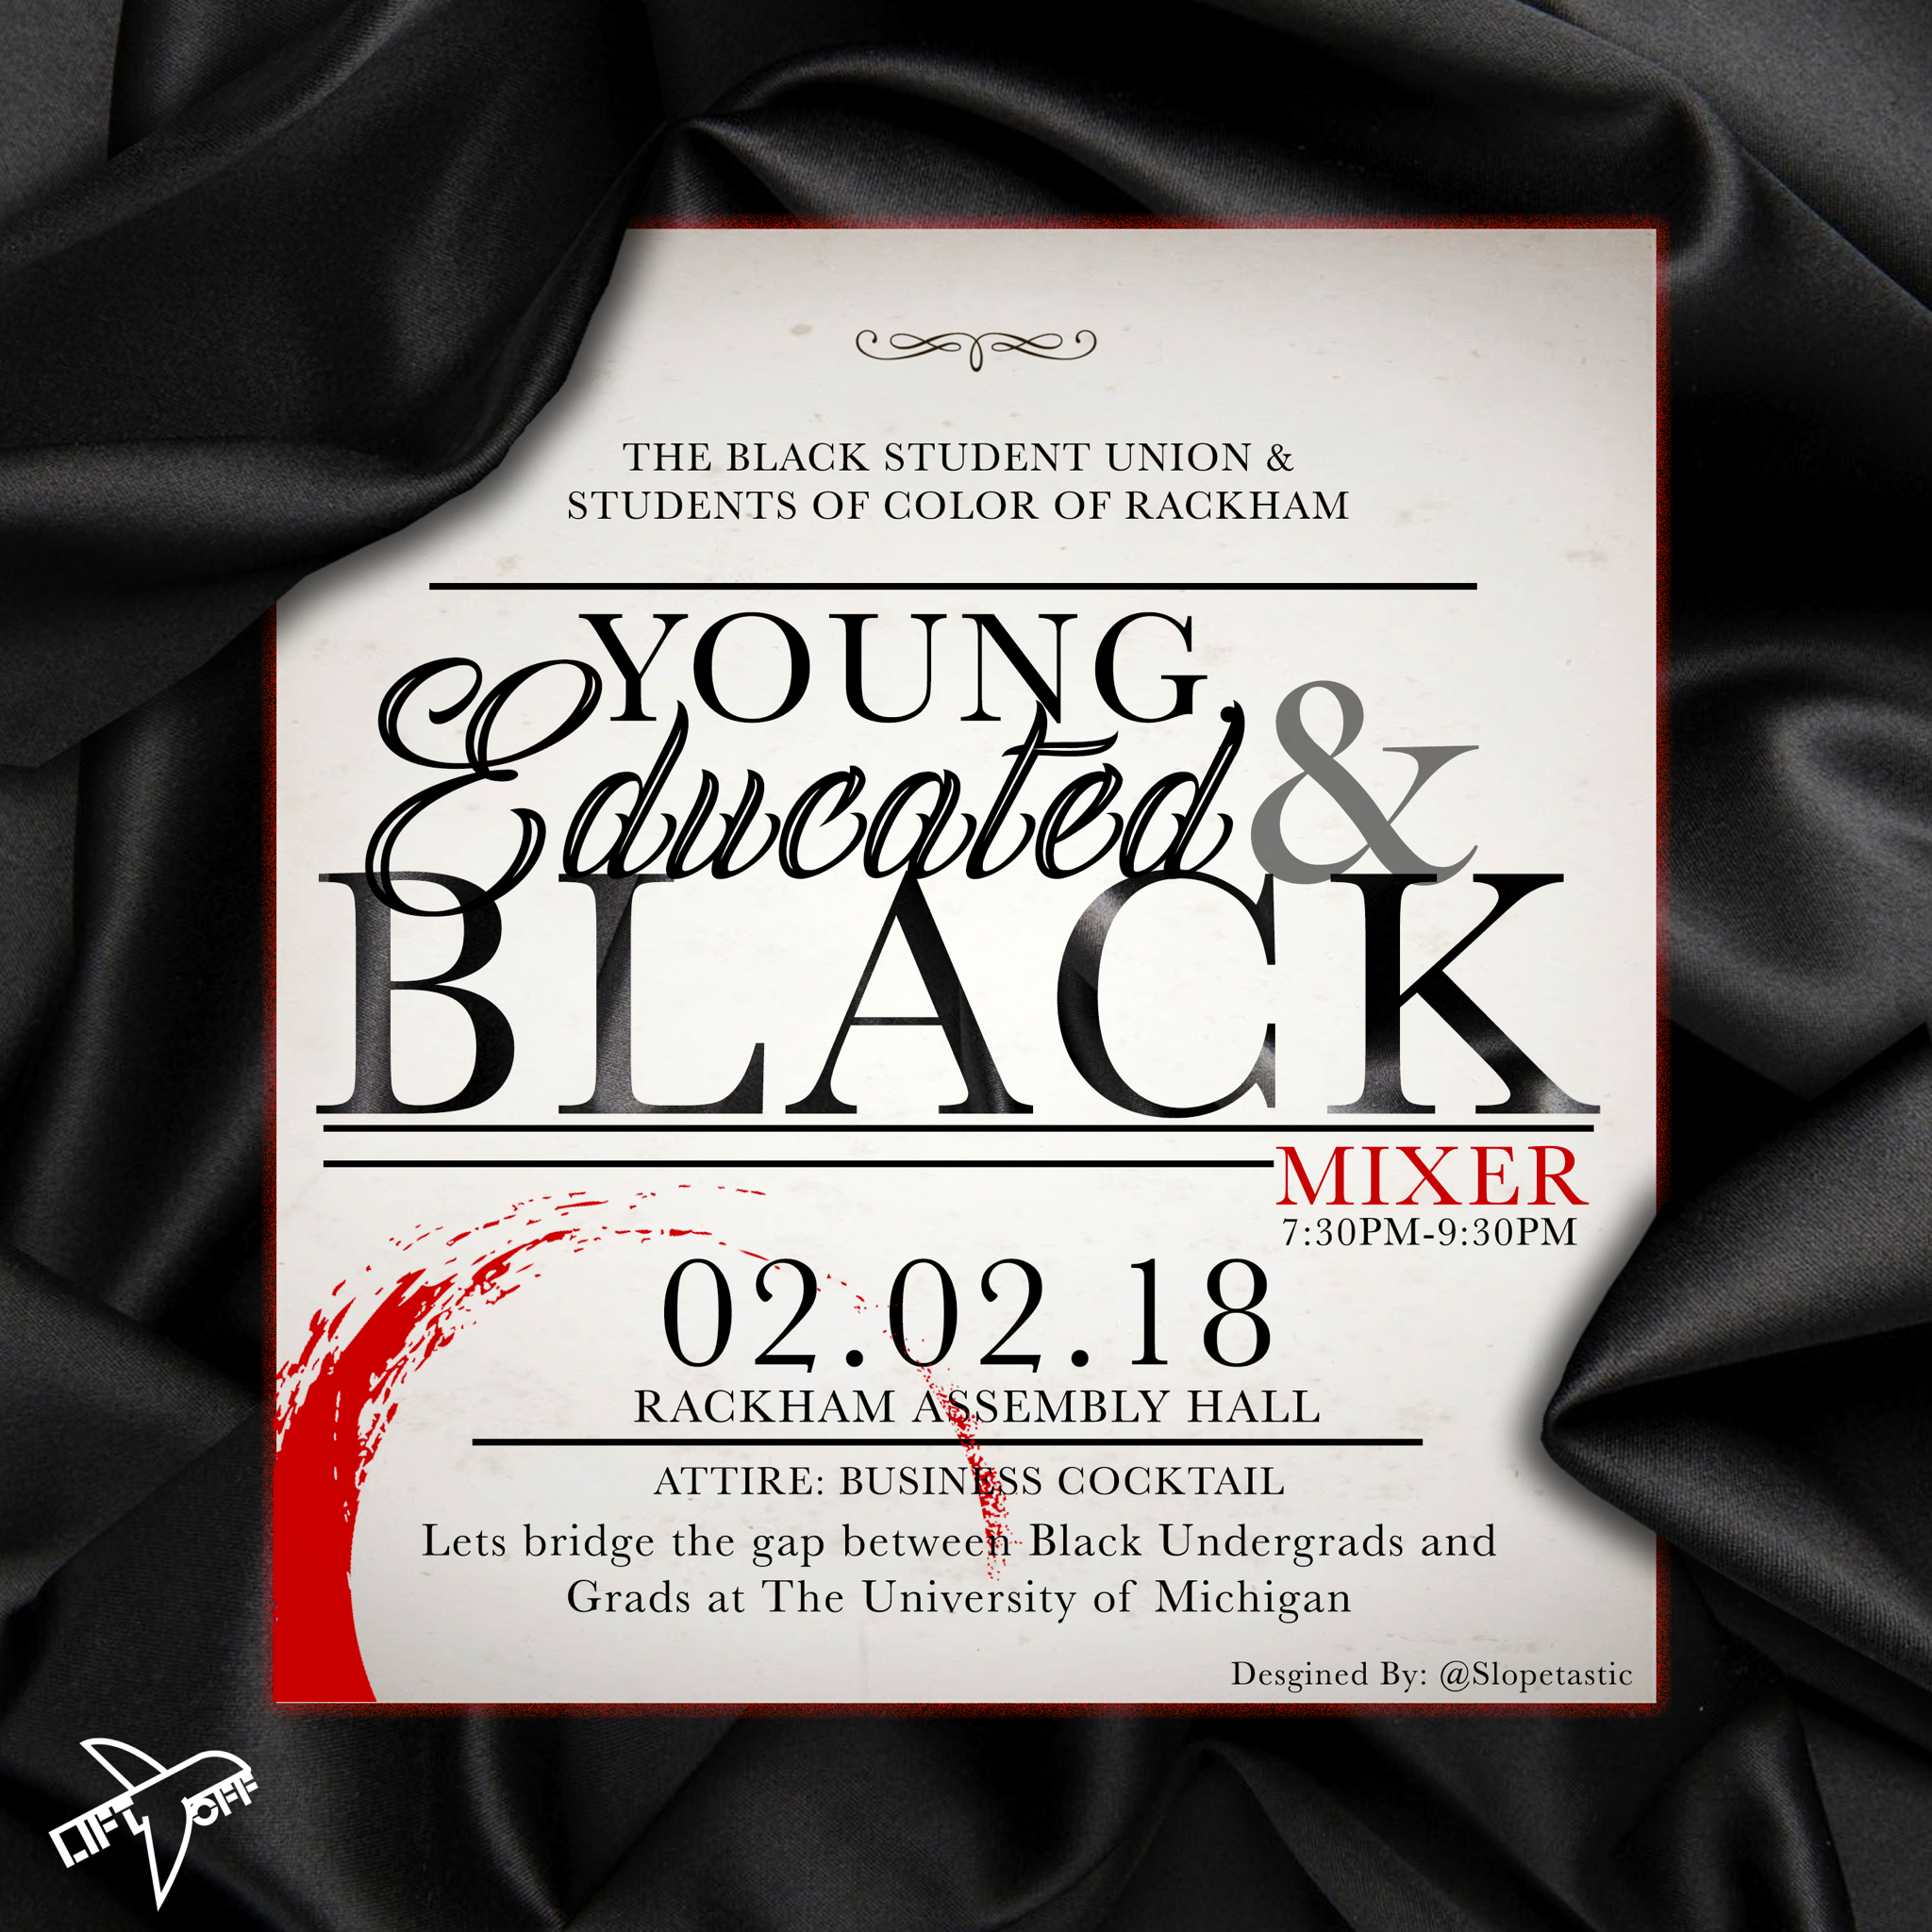 Young, Black and Educated Mixer - Hosted by the Black Student Union and SCORDate: February 2, 2018Time: 7:30pm to 9:30pmLocation: Rackham Assembly HallAttire: Business CocktailDJ LIFTOFF spinning all night!